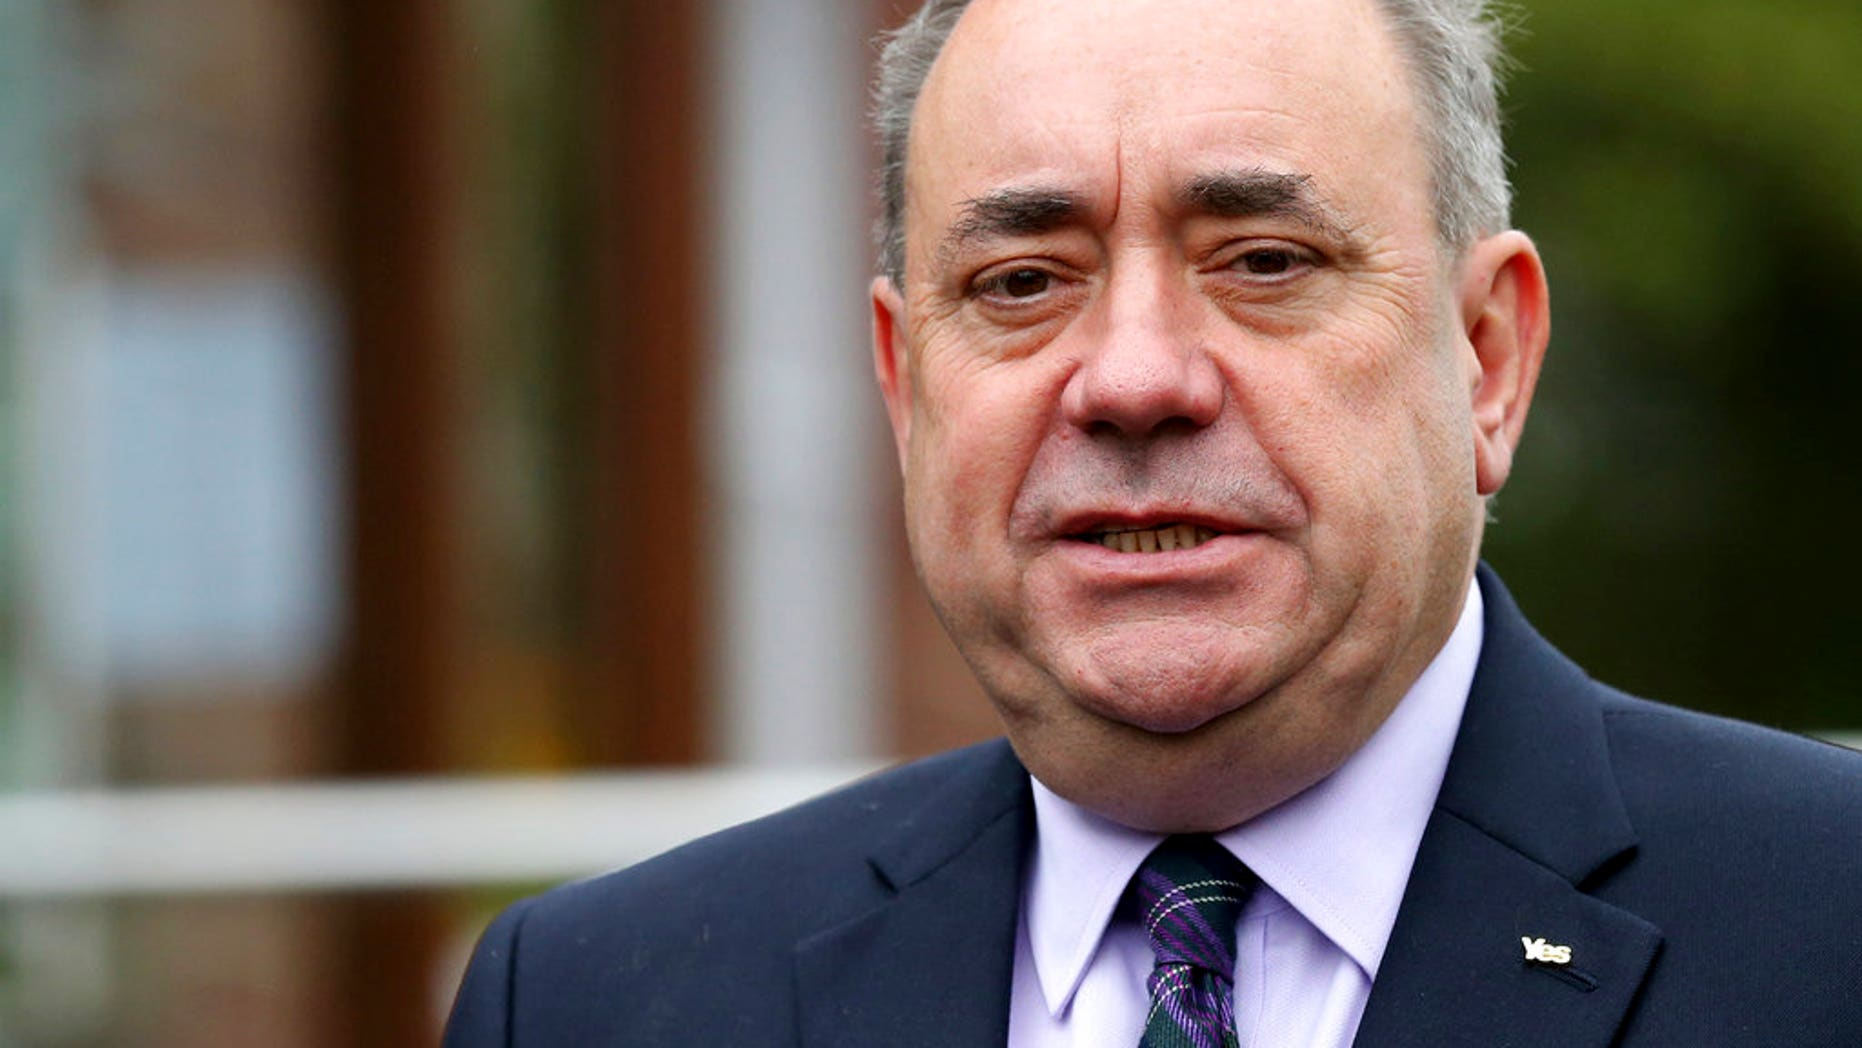 Scotland's former First Minister Alex Salmond has announced he is resigning from the Scottish National Party after allegations he sexually harassed two members of staff emerged; he has denied the allegations